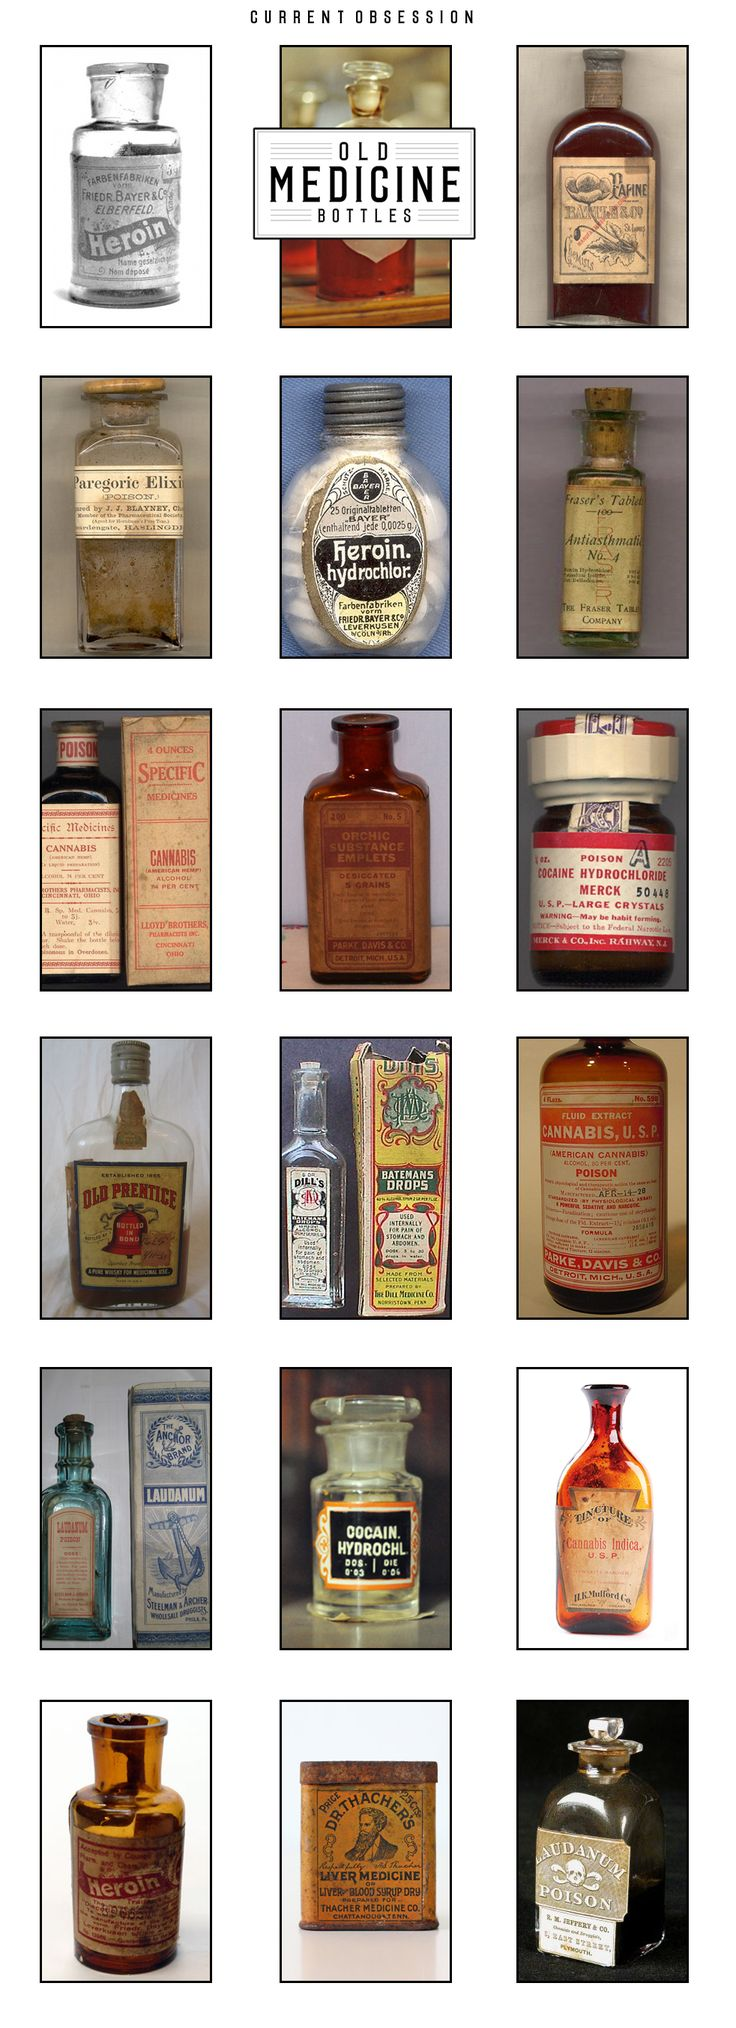 Great collection of vintage medicine bottles.